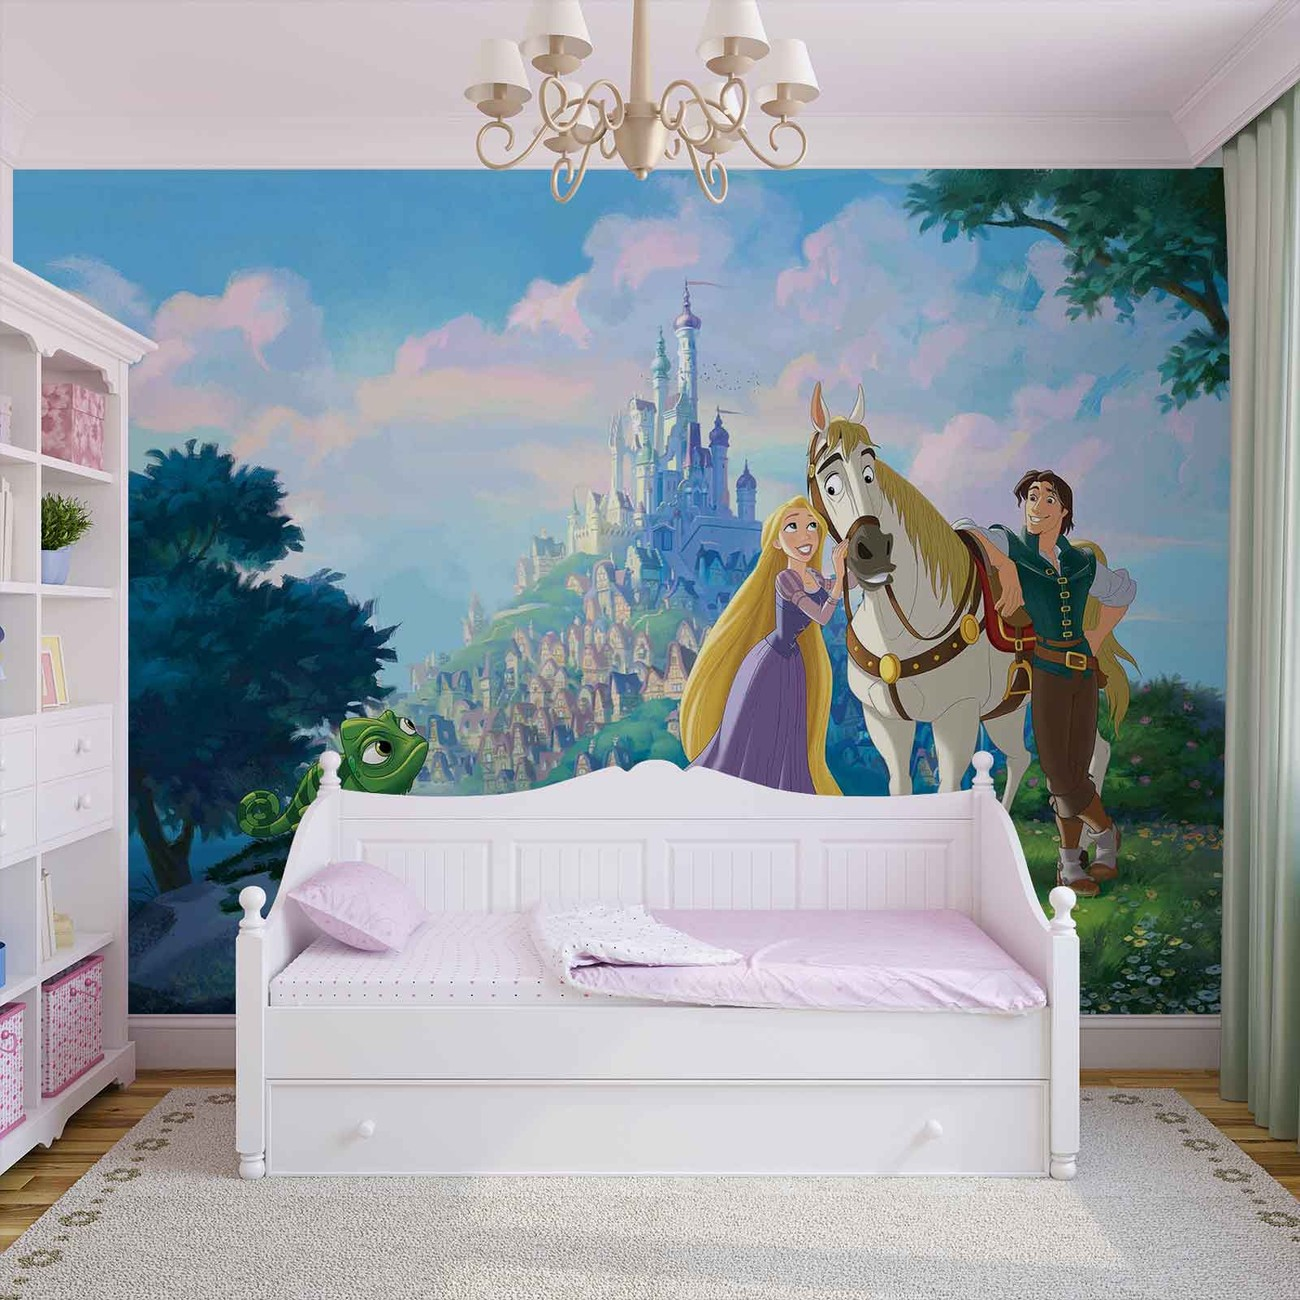 Disney princesses rapunzel wall paper mural buy at for Disney princess mural asda